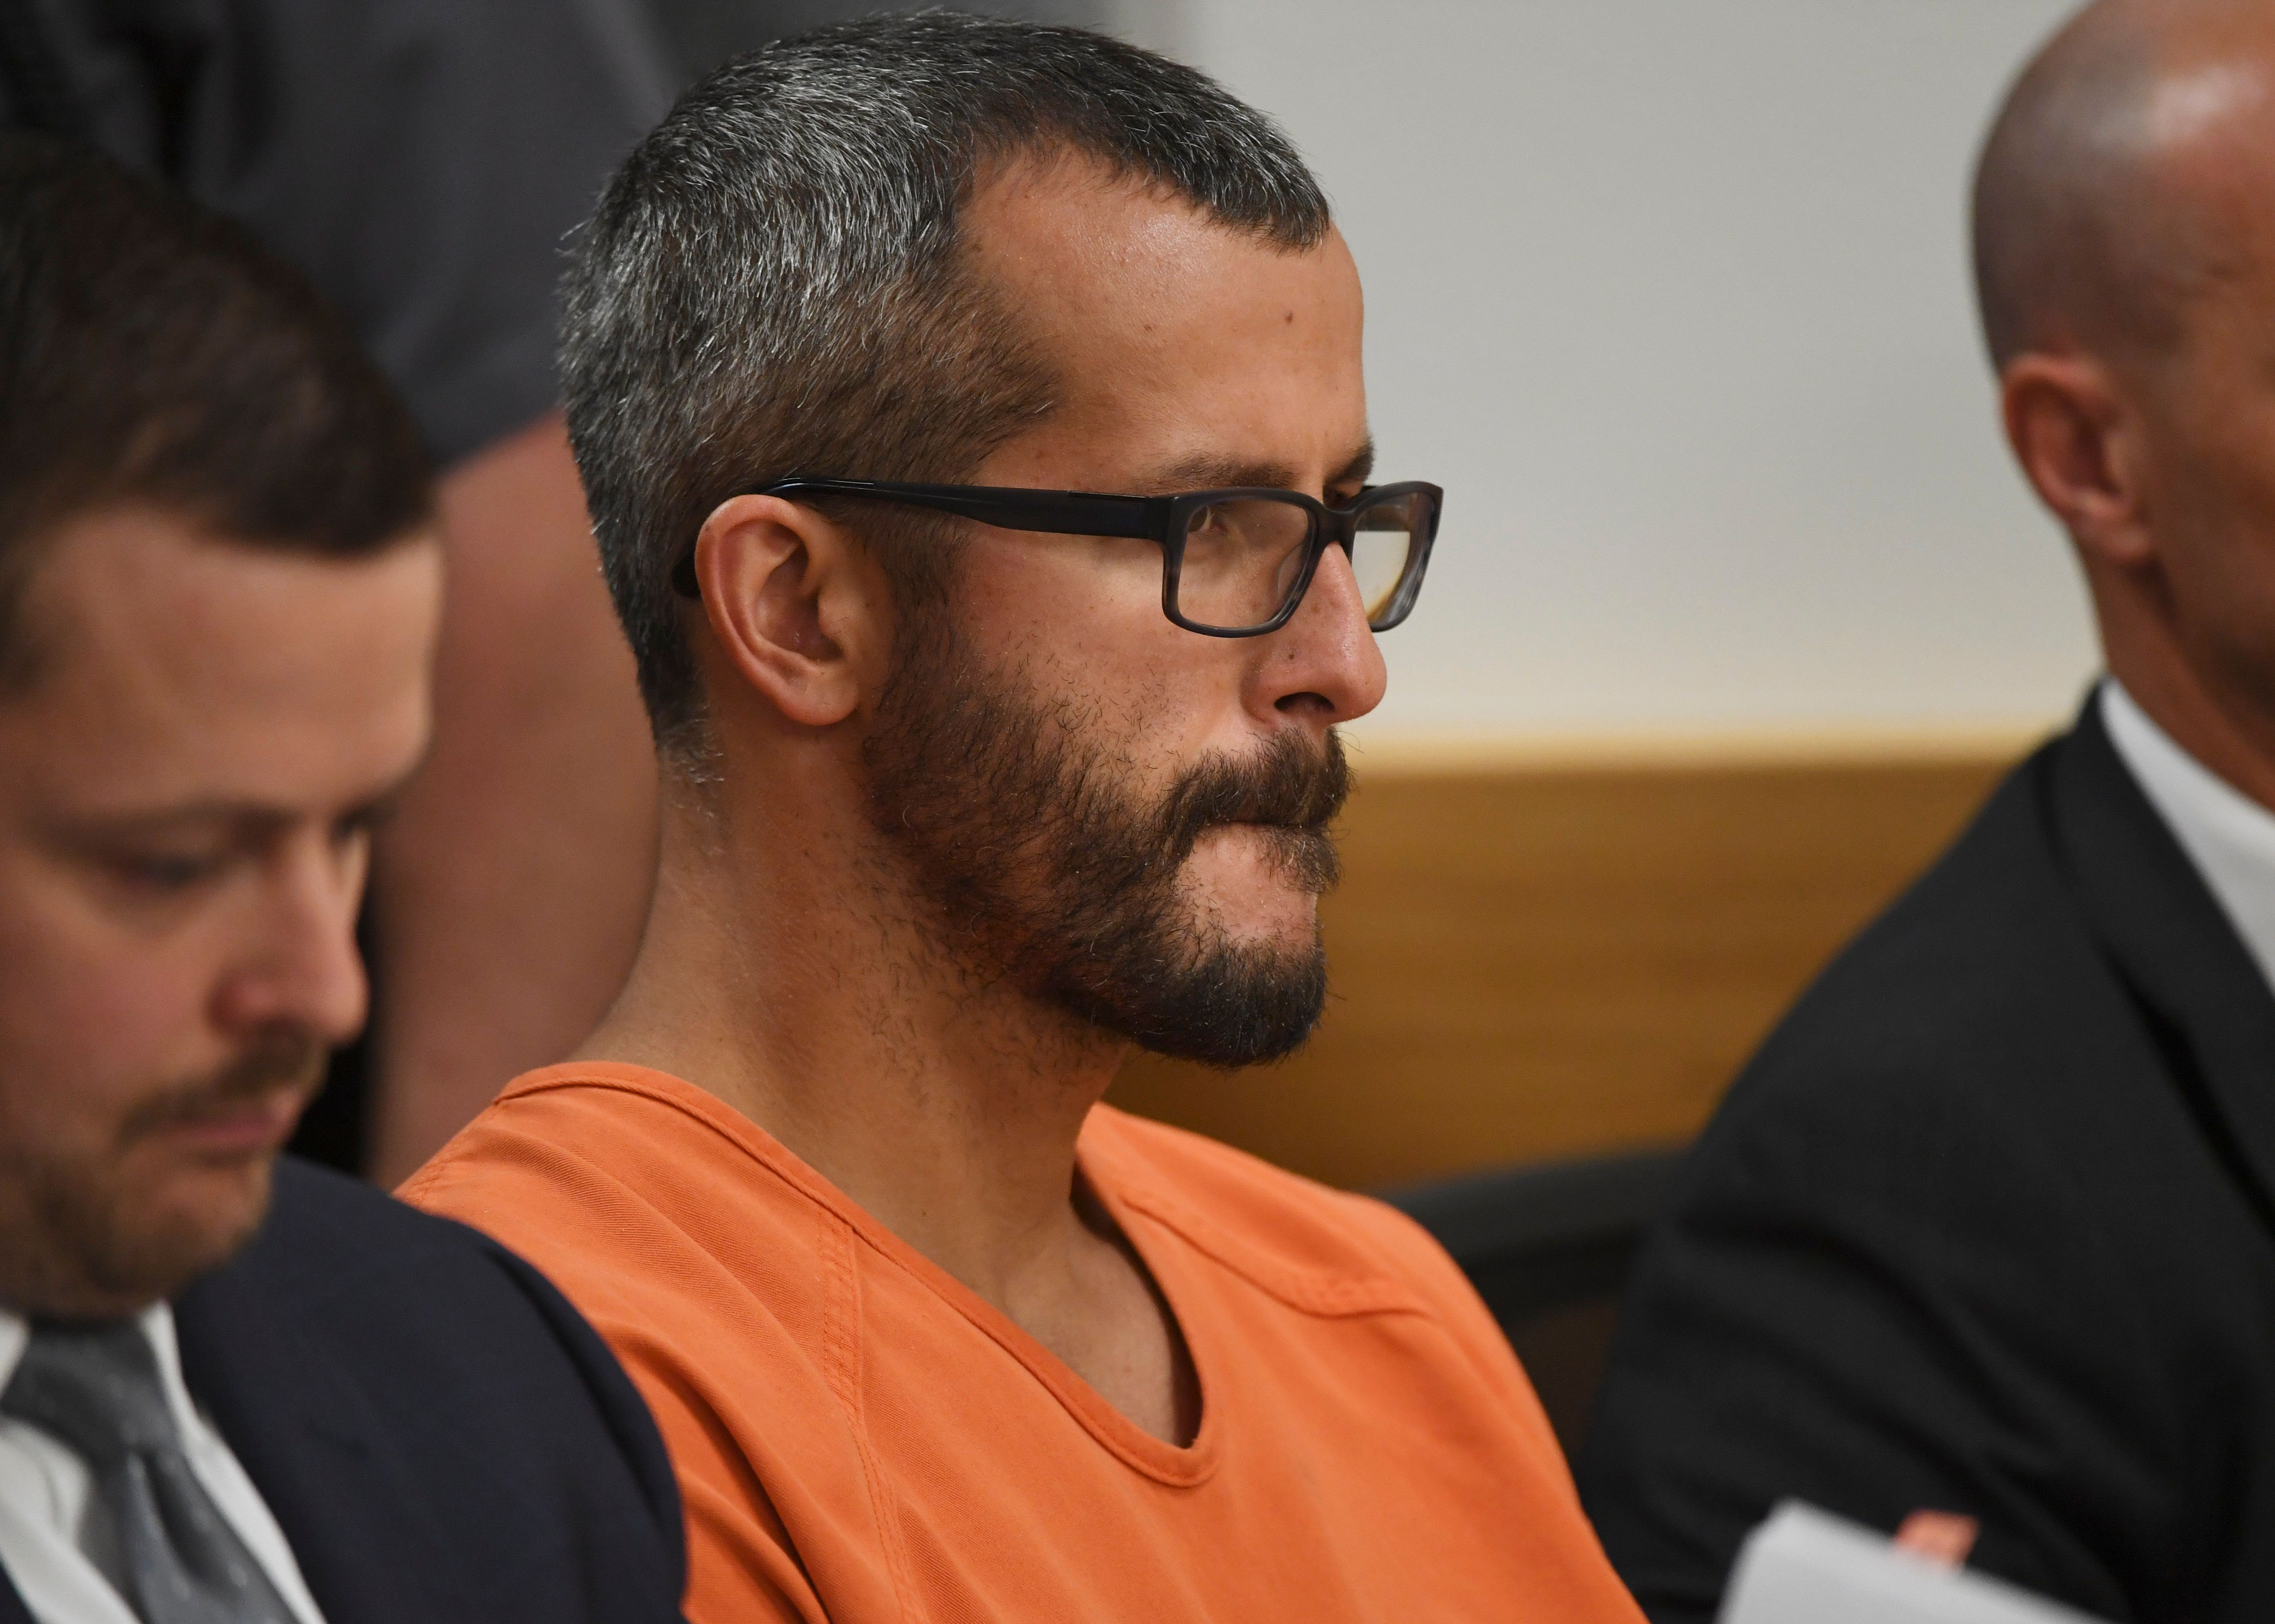 GREELEY, CO - AUGUST 21: Christopher Watts is in court for his arraignment hearing at the Weld County Courthouse on August 21, 2018 in Greeley, Colorado. Watts faces nine charges, including several counts of first-degree murder of his wife and his two young daughters.  (Photo by RJ Sangosti - Pool/Getty Images)